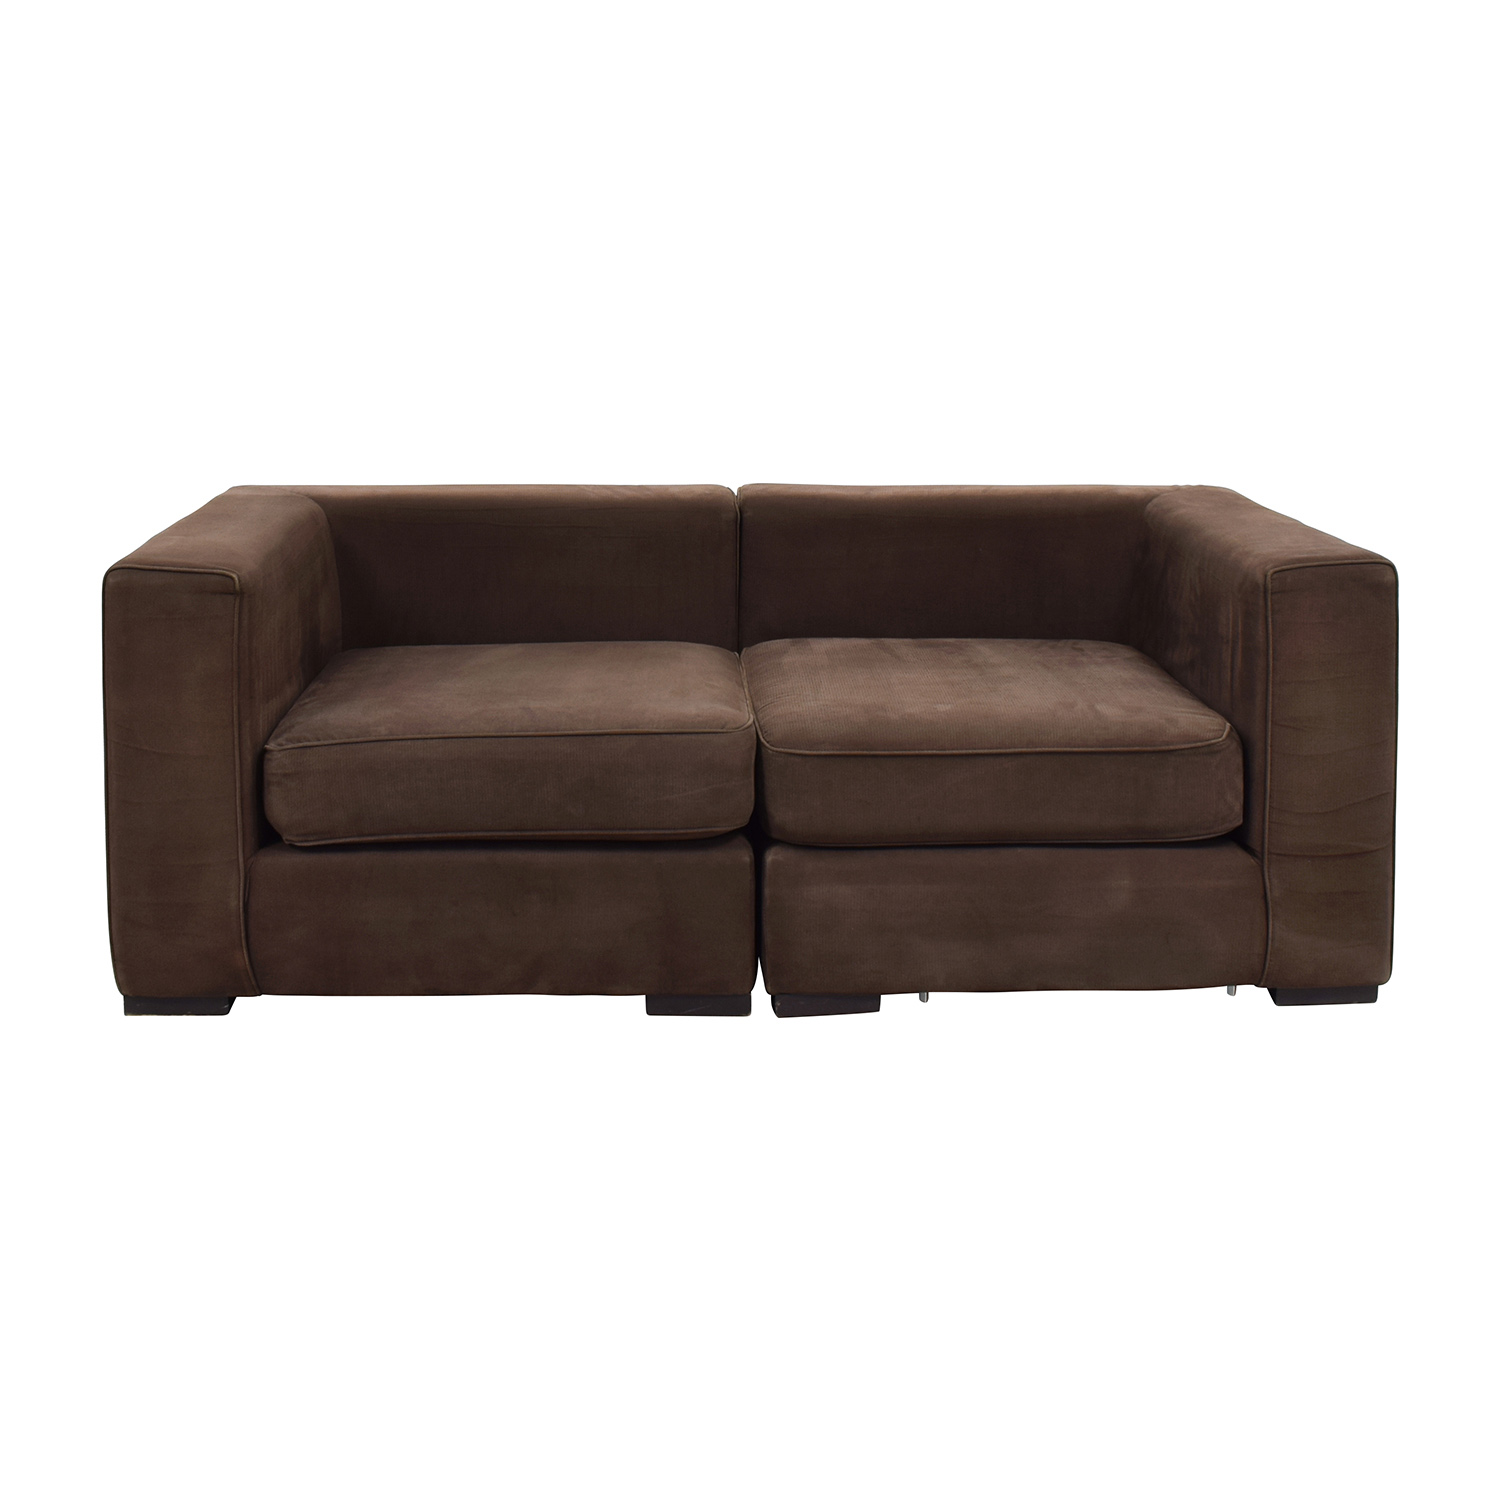 West Elm West Elm Brown Modular Sofa Dark Chocolate